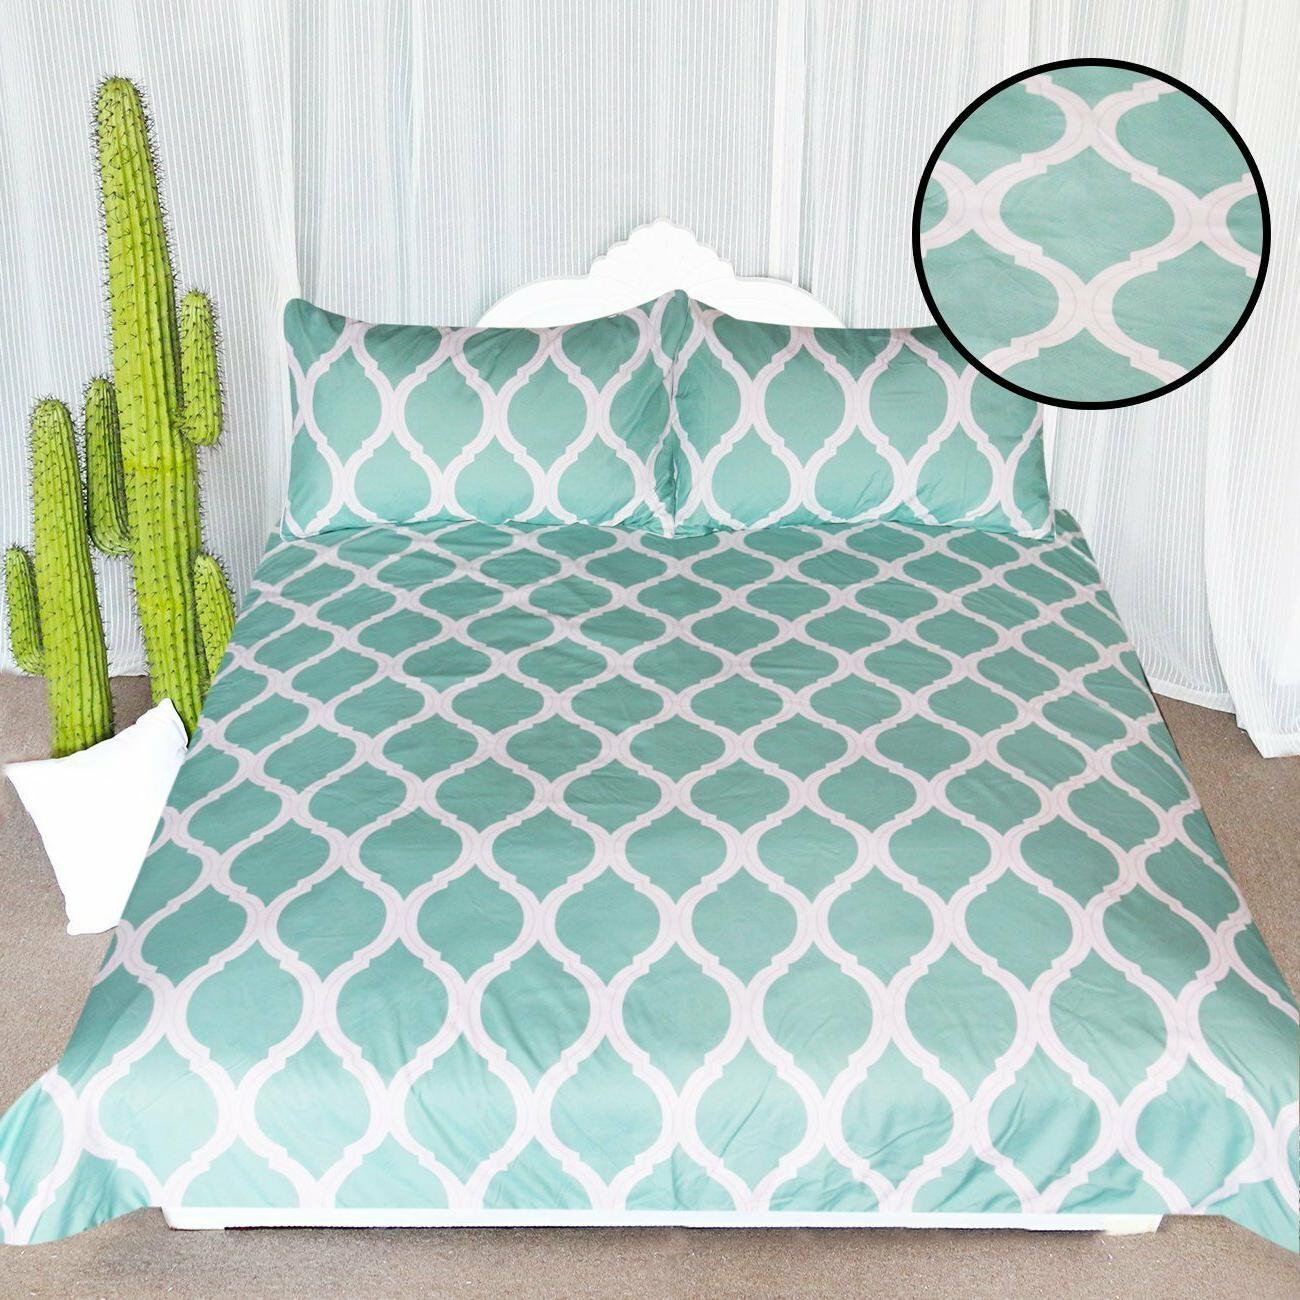 arightex spa blue printed comforter cover stylish